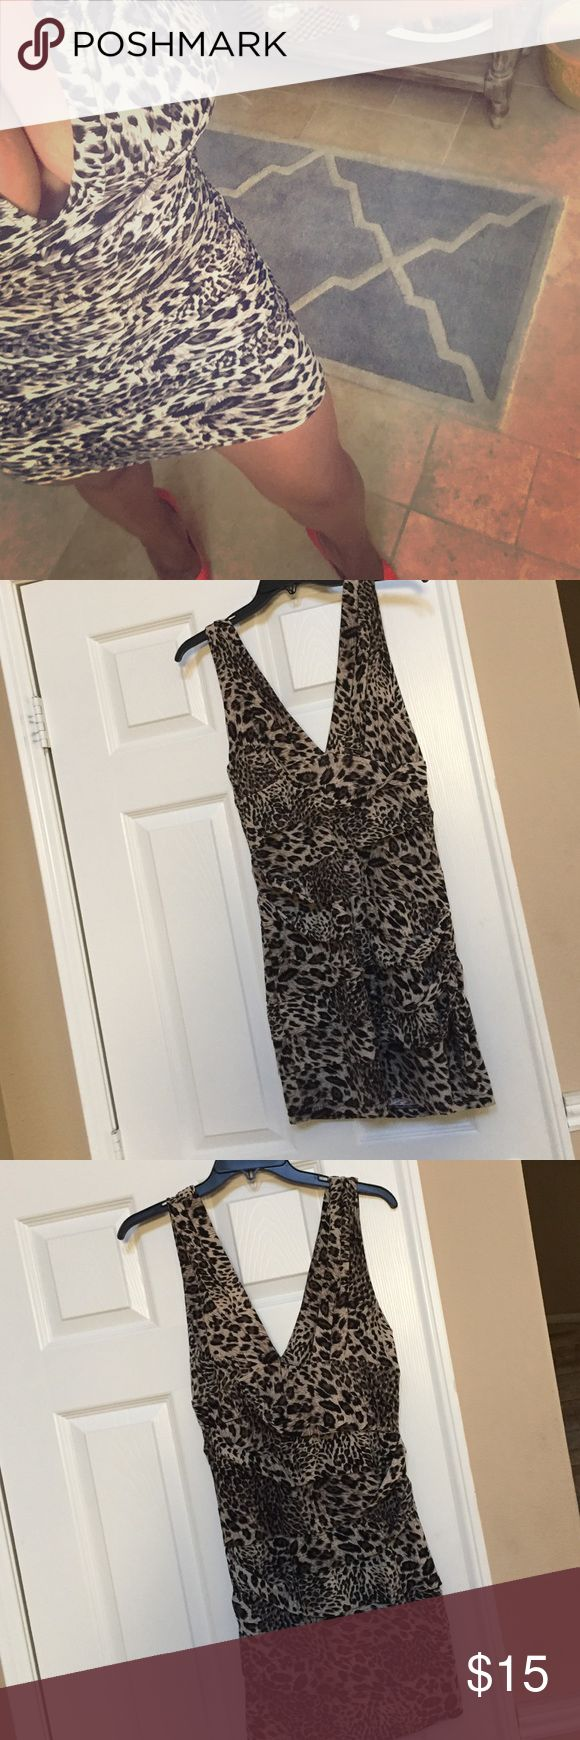 Pleated bodycon animal print mini dress Sexy animal print bodycon mini! Pleating throughout for flattering fit, deep v.  Size M. Worn once. Dresses Mini